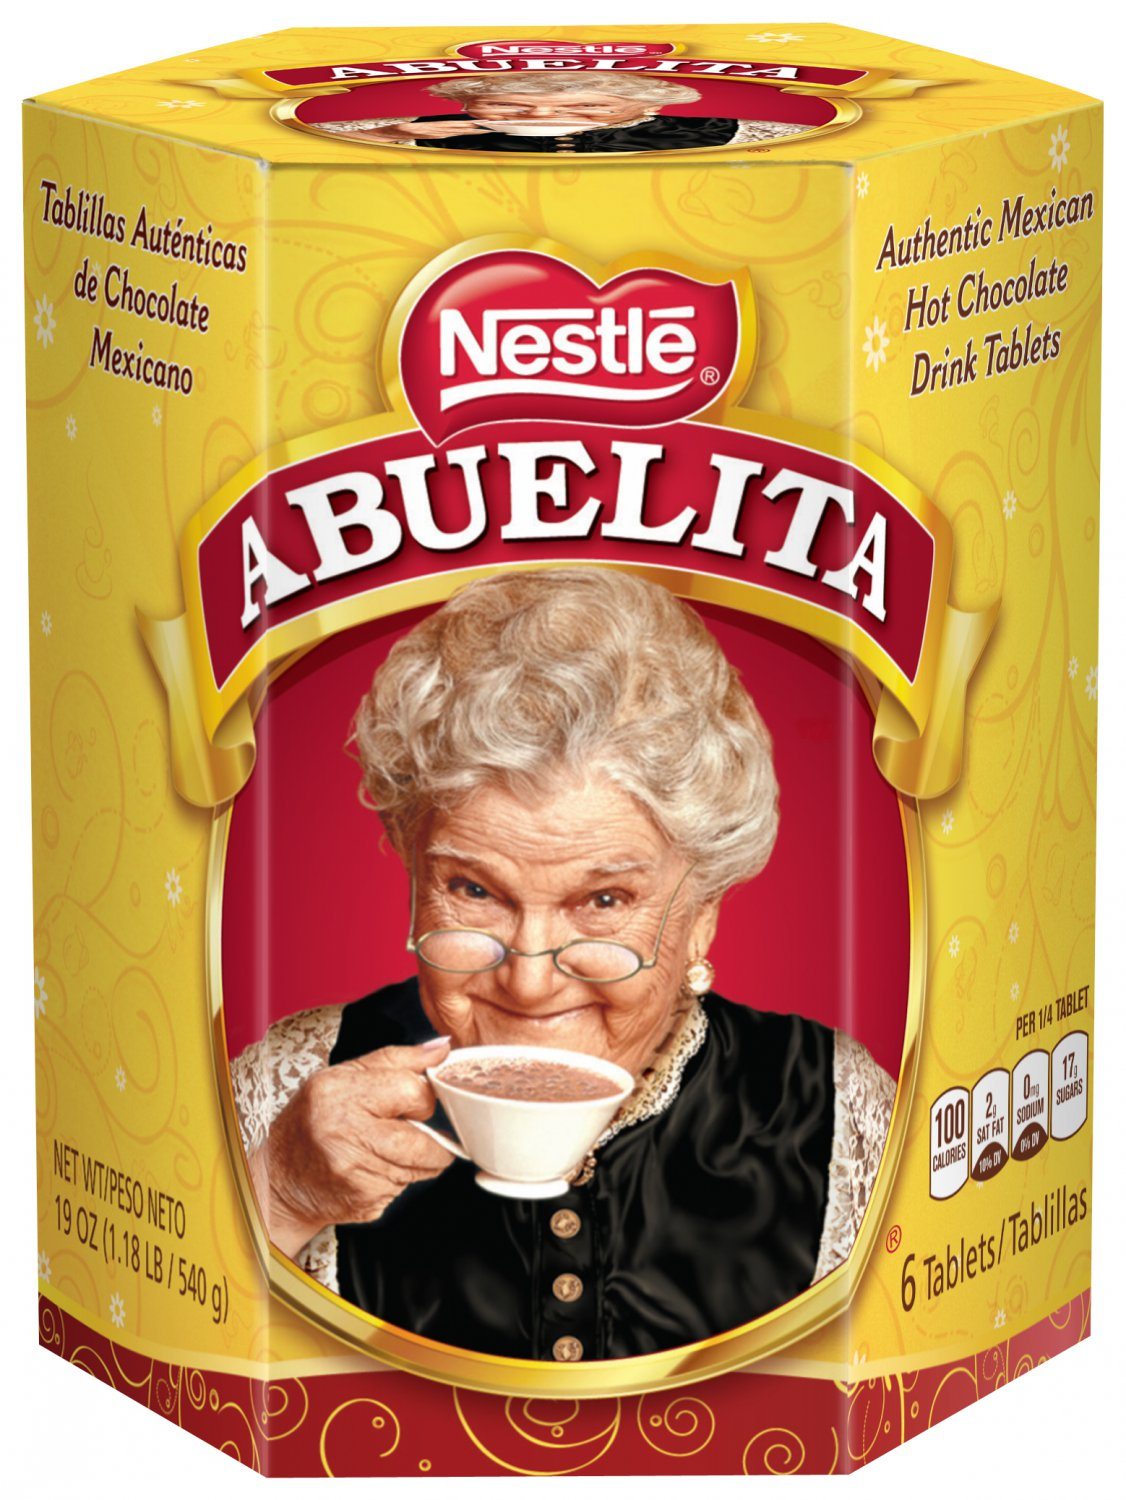 La Abuelita Chocolate